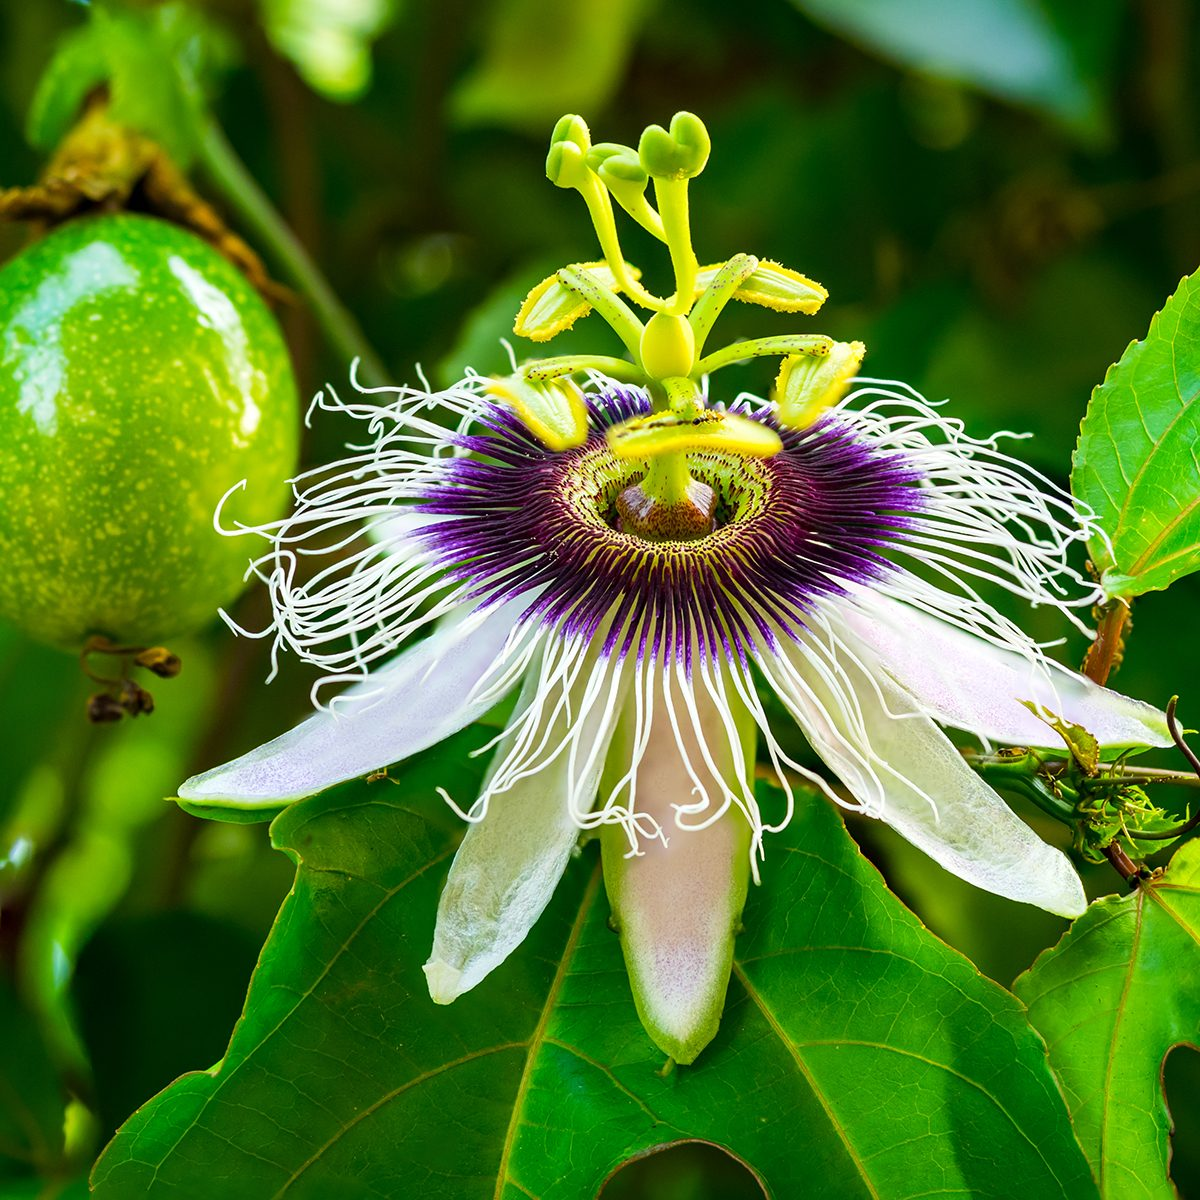 Passion fruit and flower on a vine